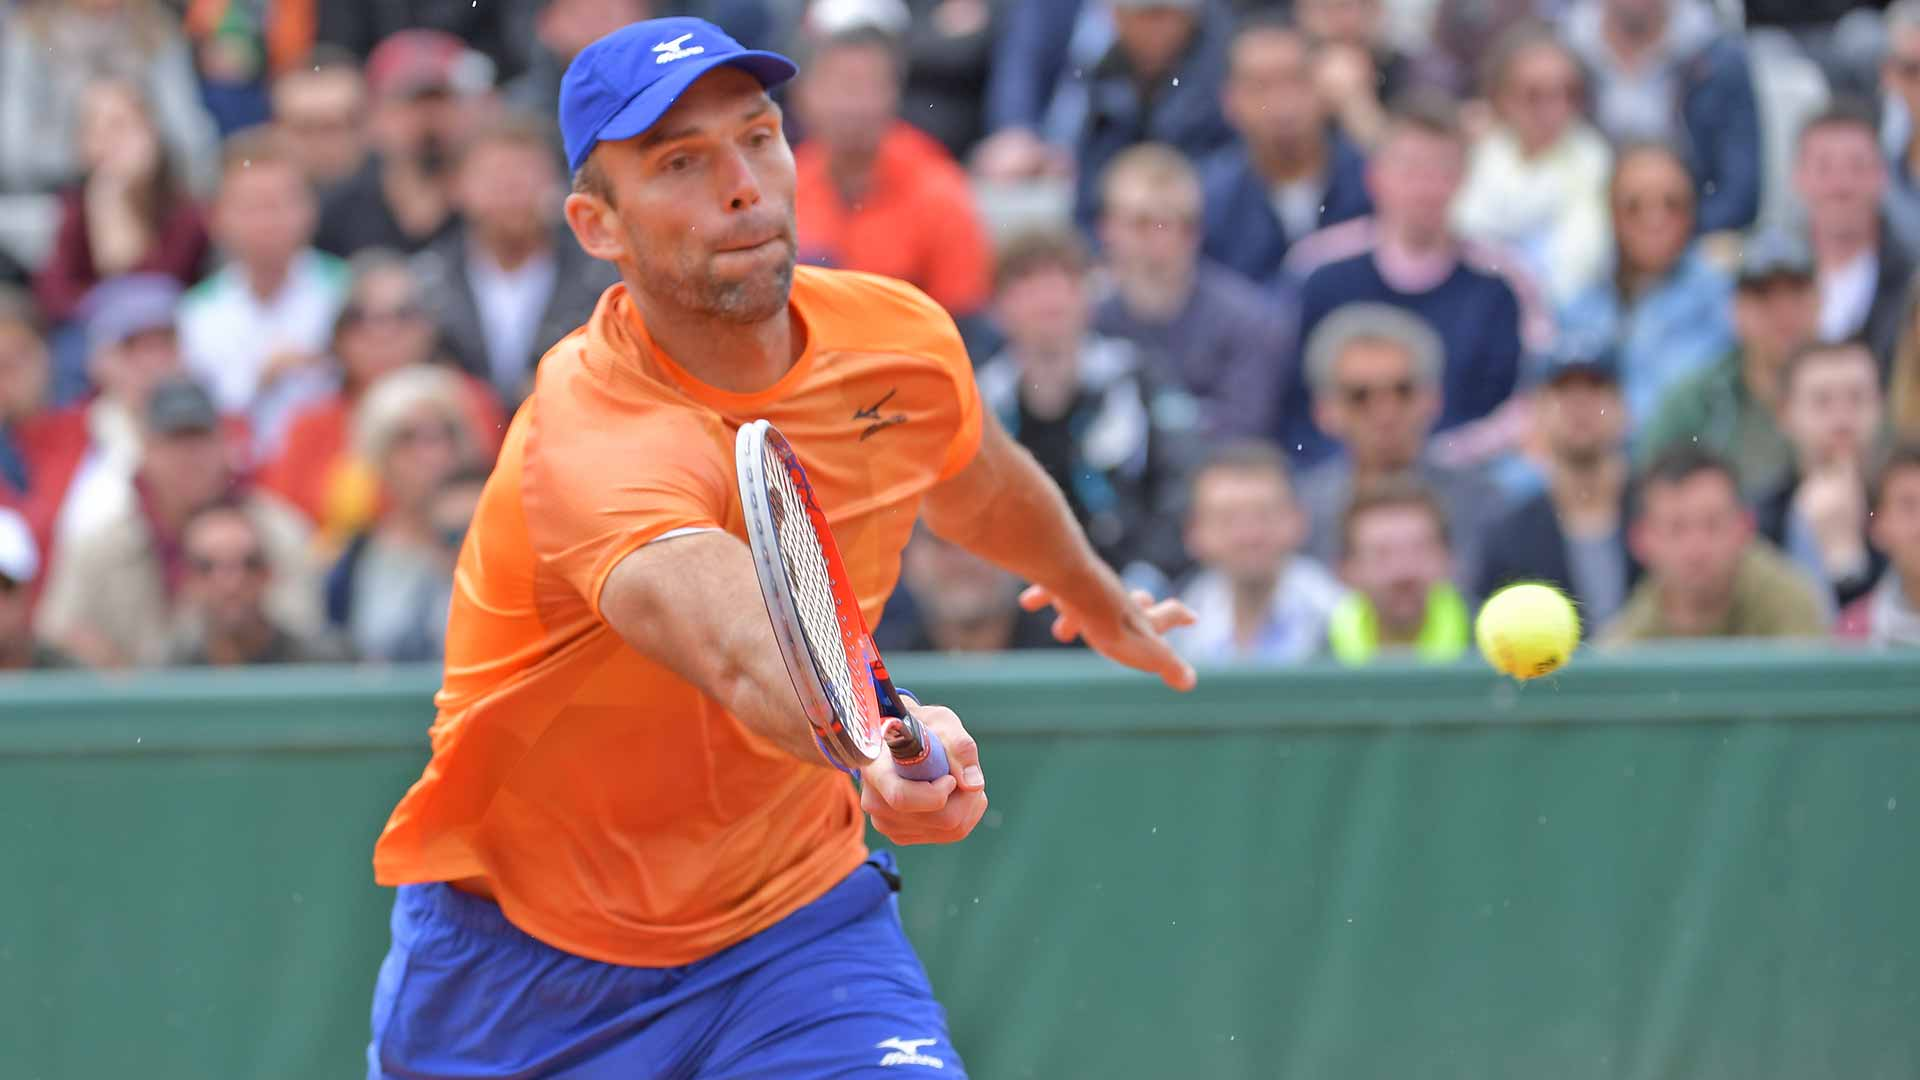 Ivo Karlovic hits a volley at Roland Garros